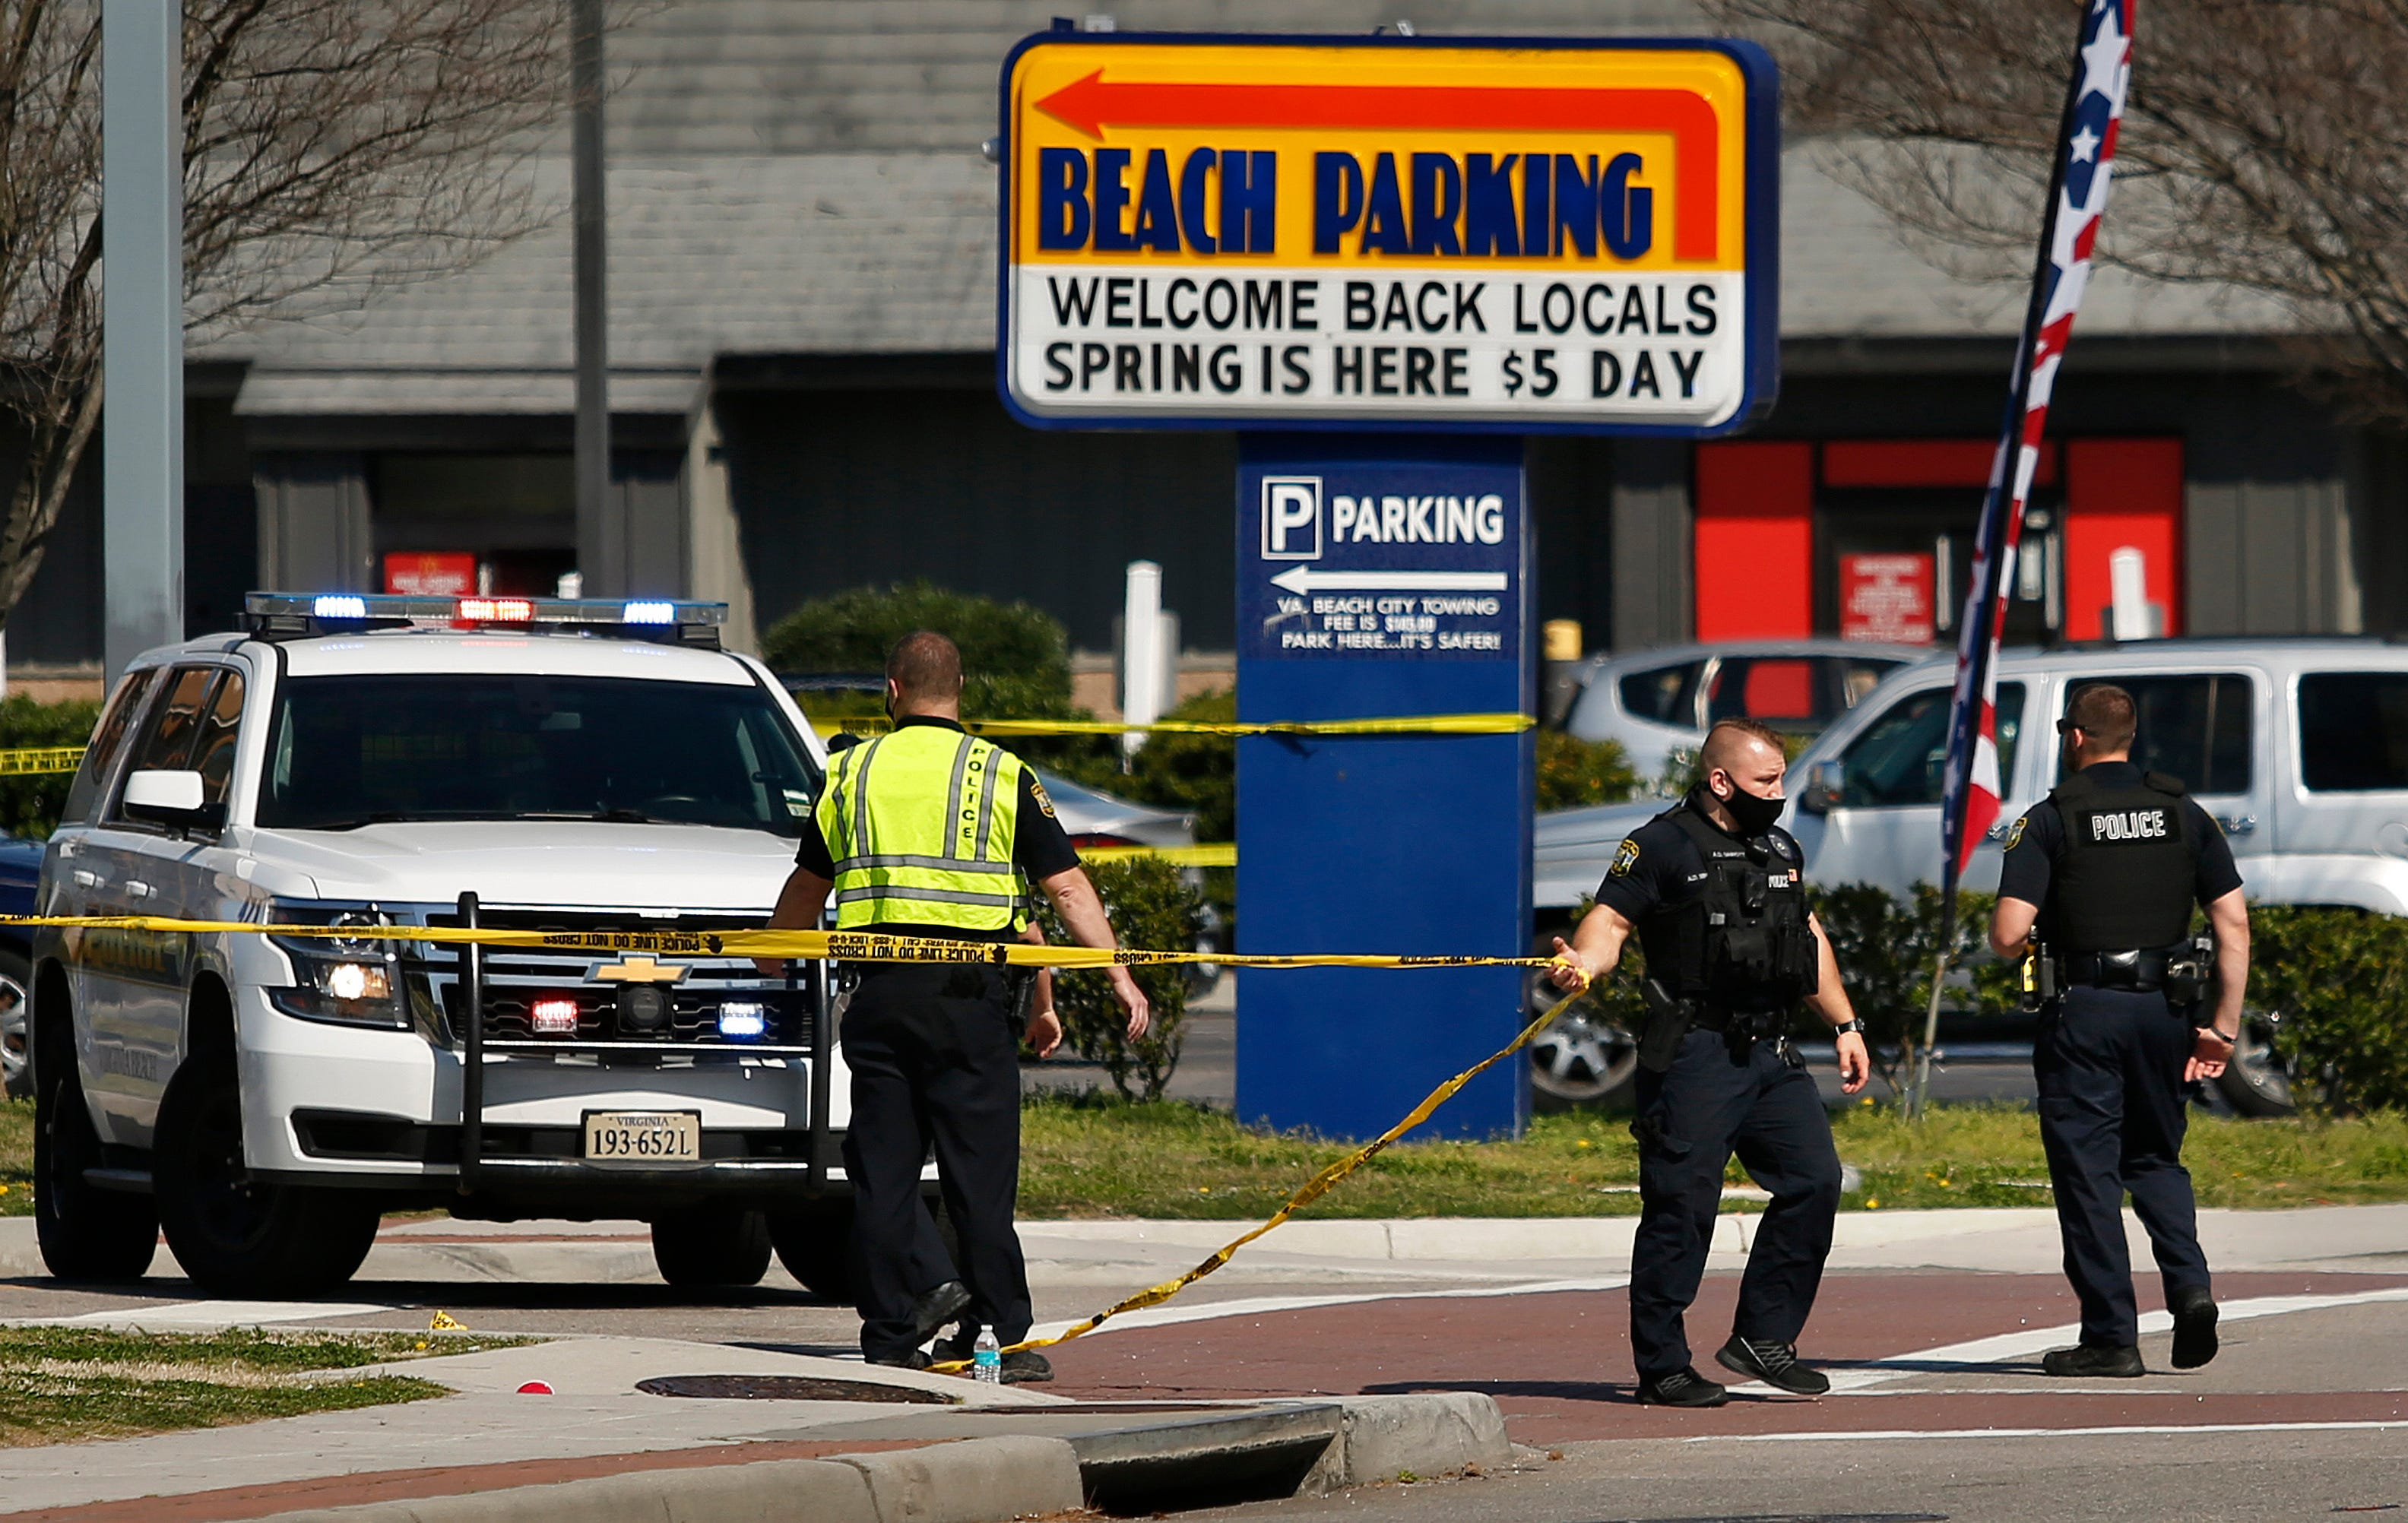 Police: 2 dead, 8 wounded in Virginia Beach oceanfront shootings 1